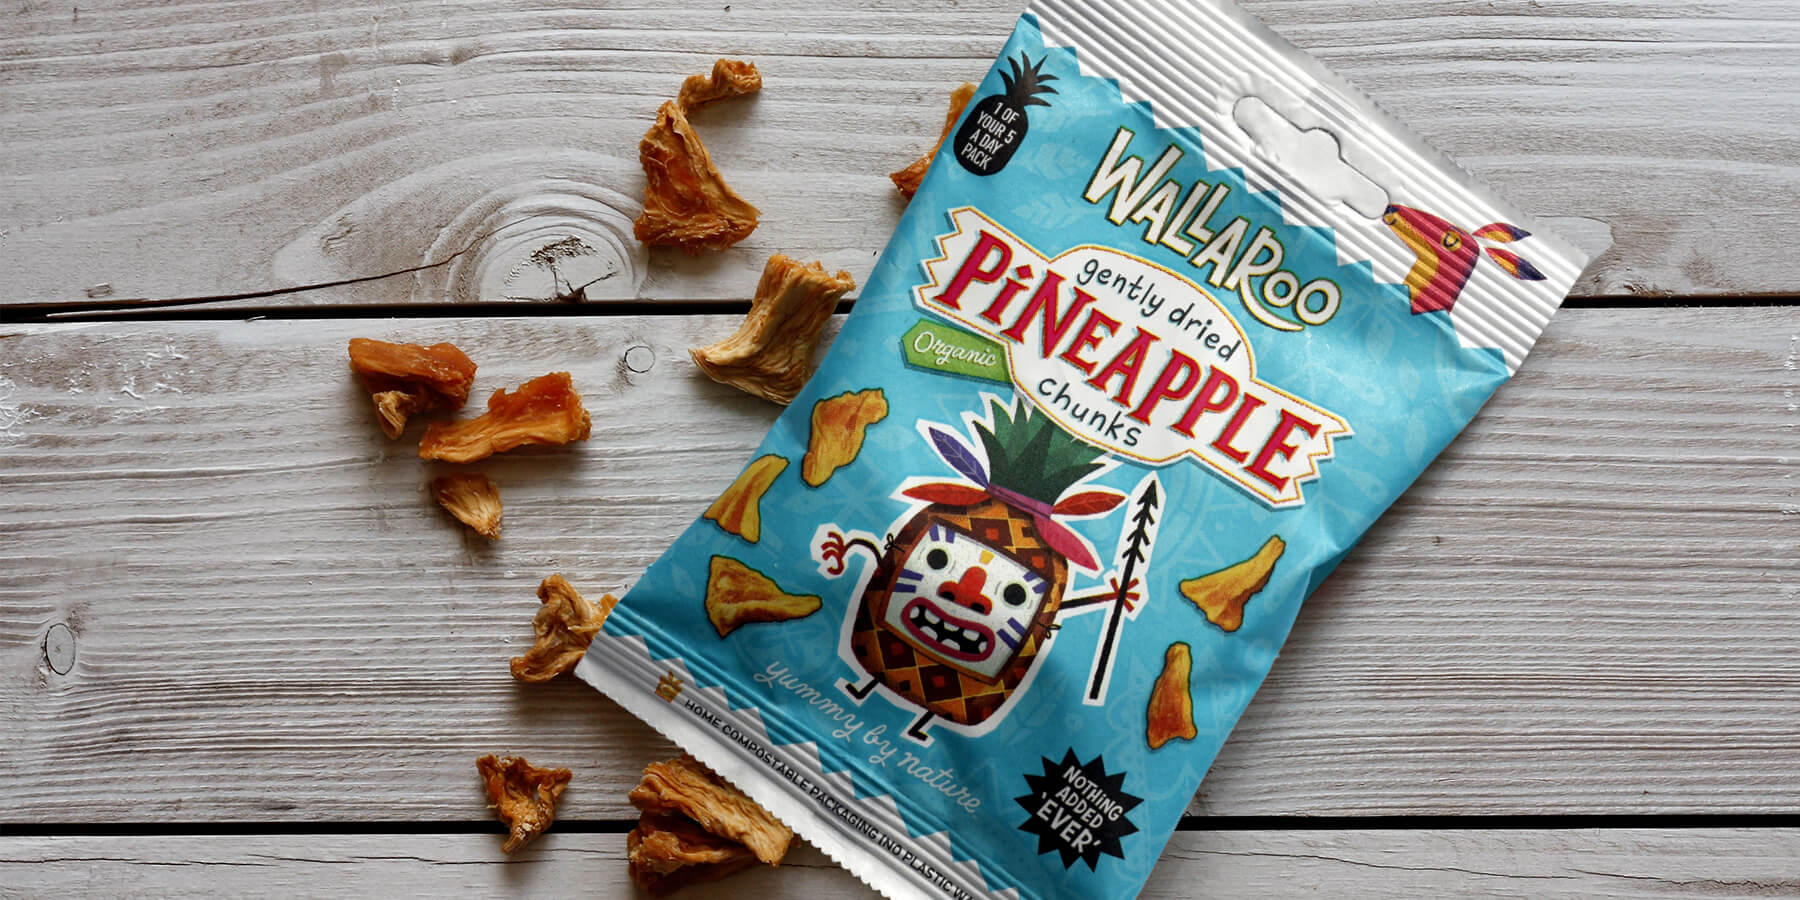 Wallaroo organic pineapple chunks are delicious